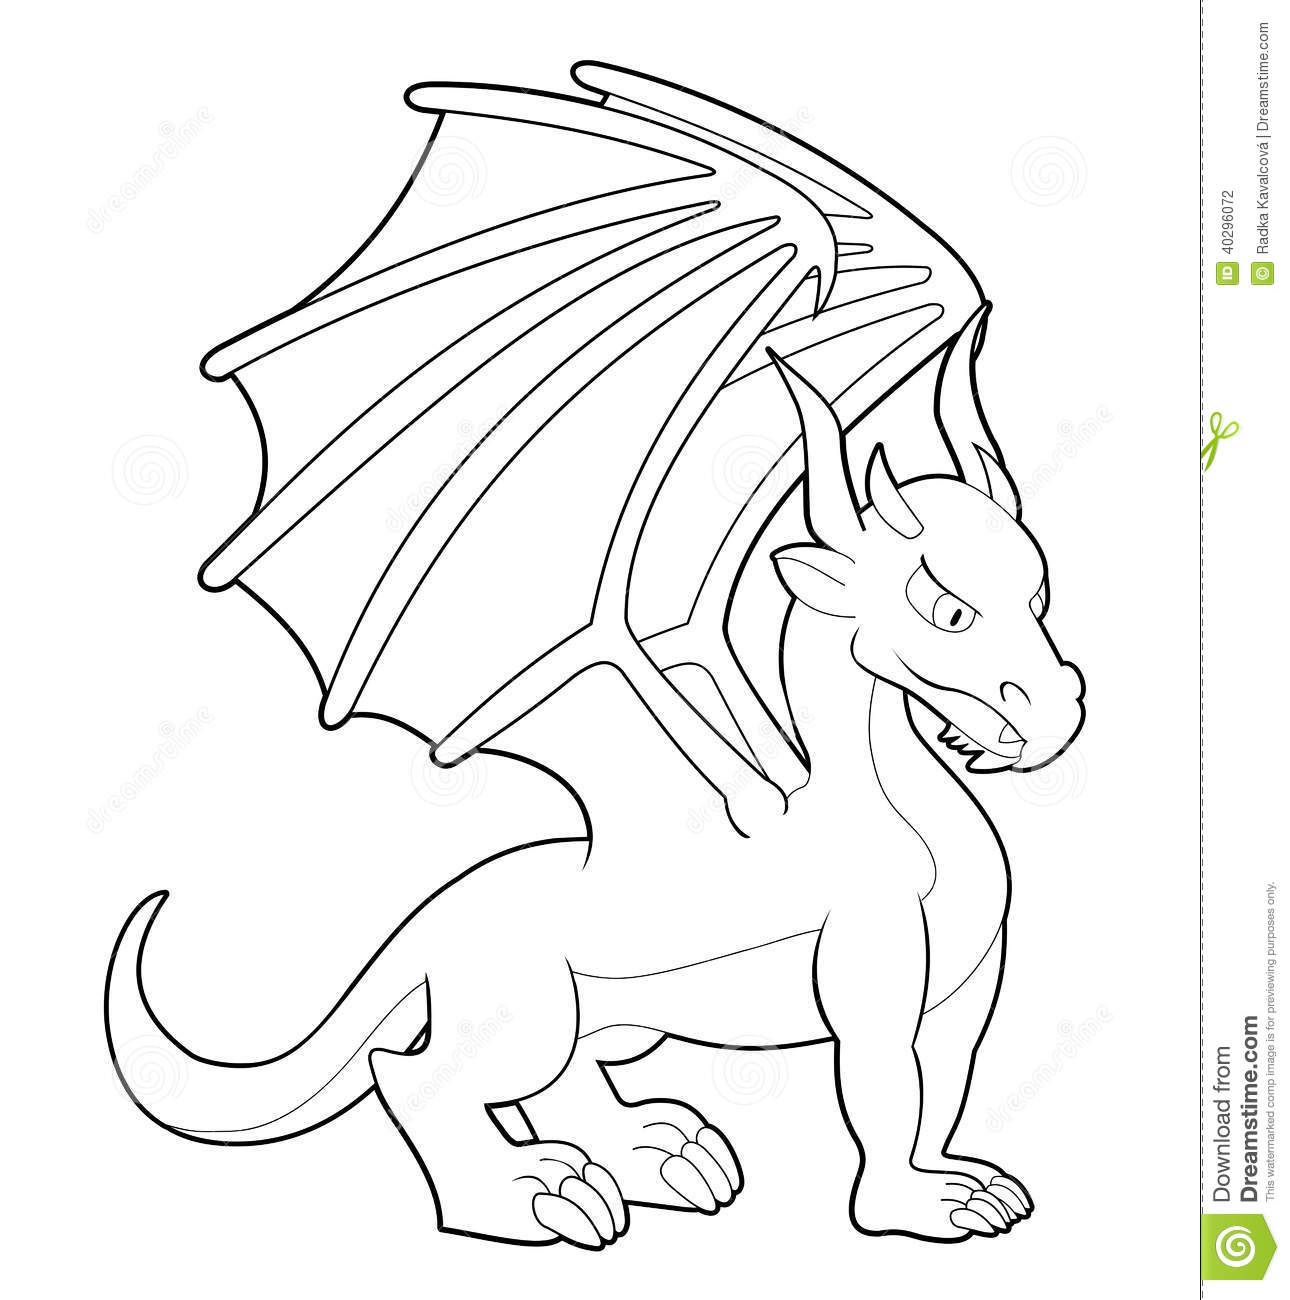 1290x1300 Dragon Drawing Cartoon How To Draw A Fire Dragon, Fire Dragon, Red